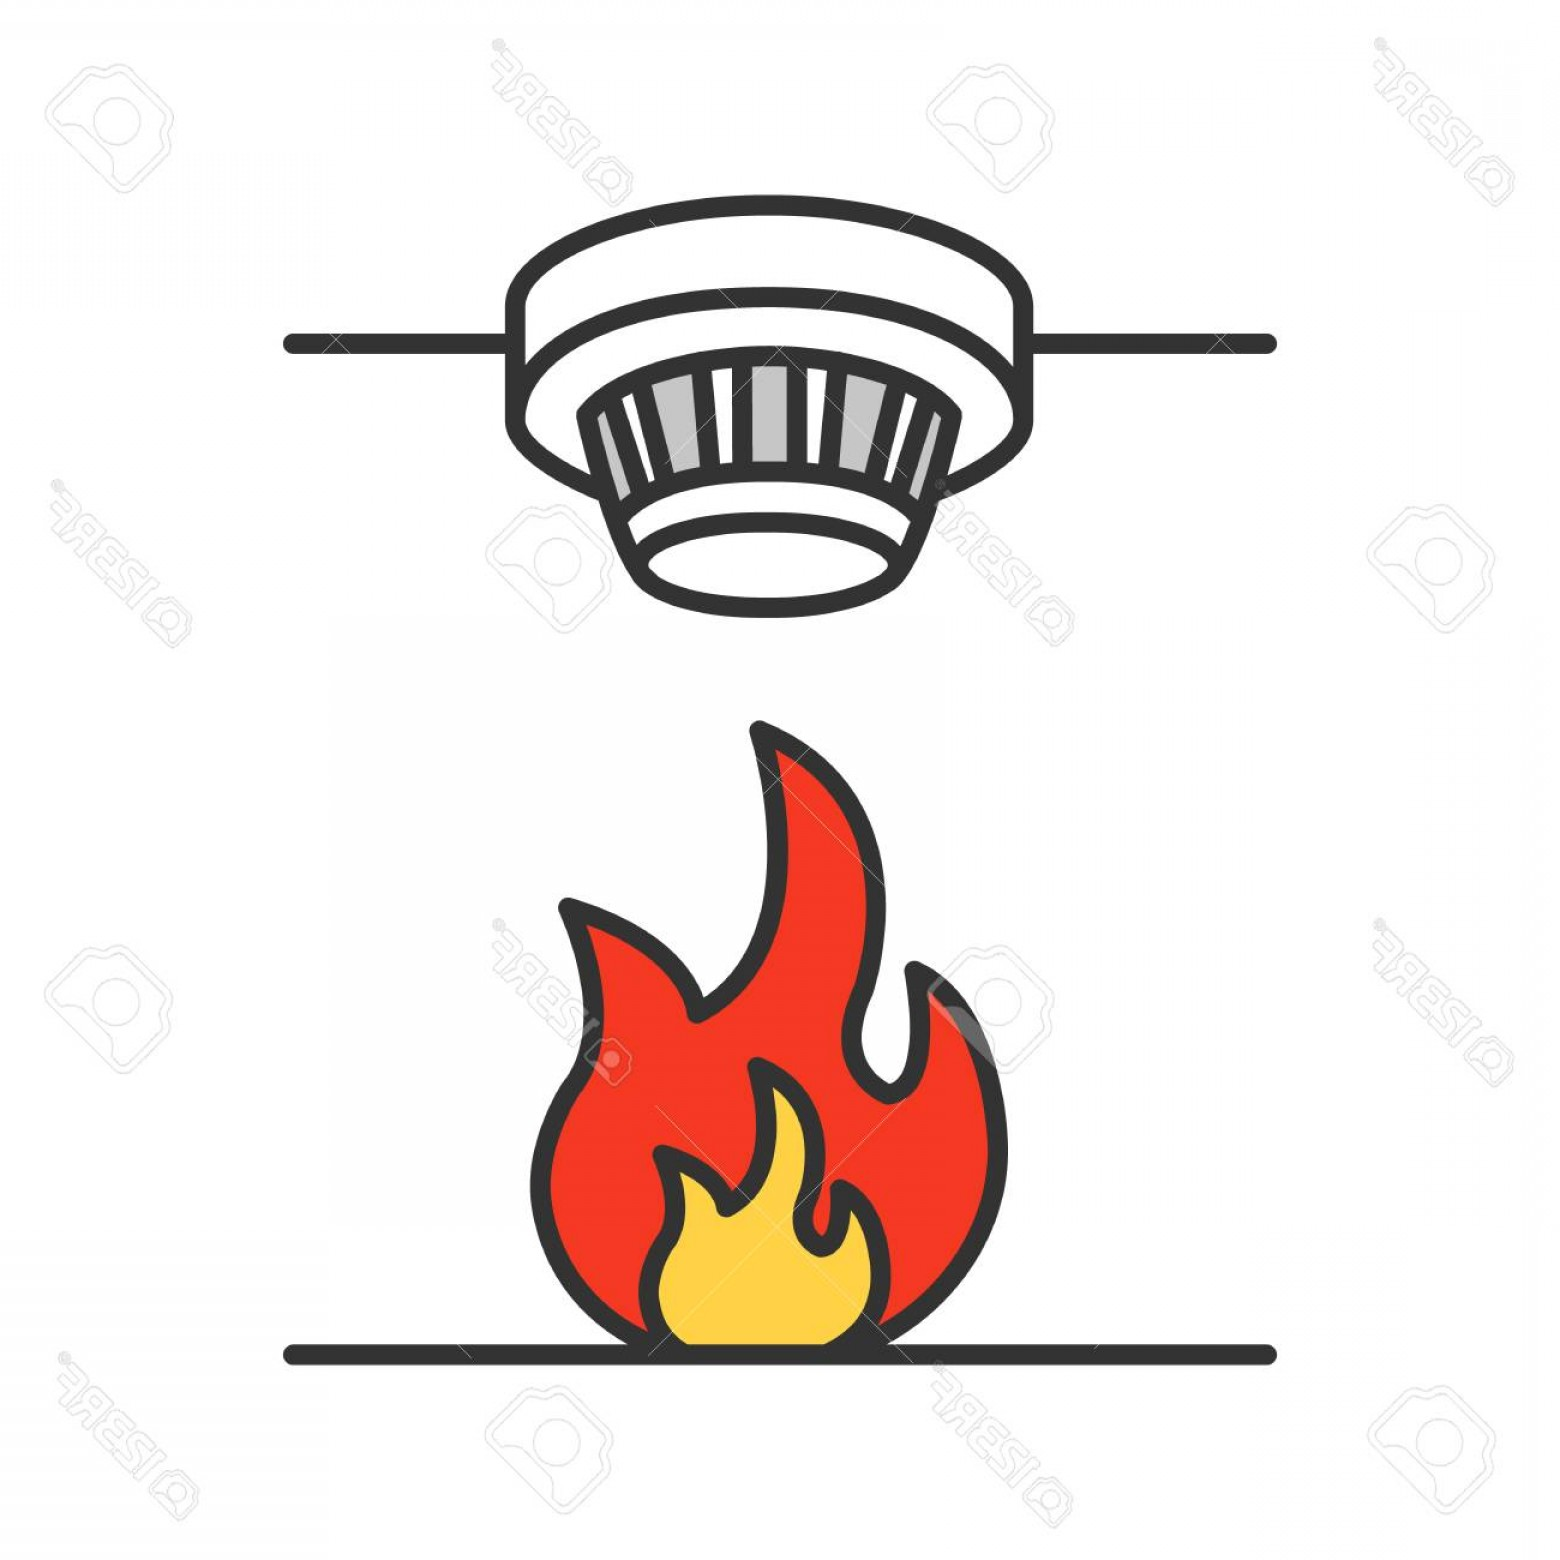 Fire Alarm Vector: Photostock Vector Smoke Detector Color Icon Fire Alarm System Isolated Vector Illustration